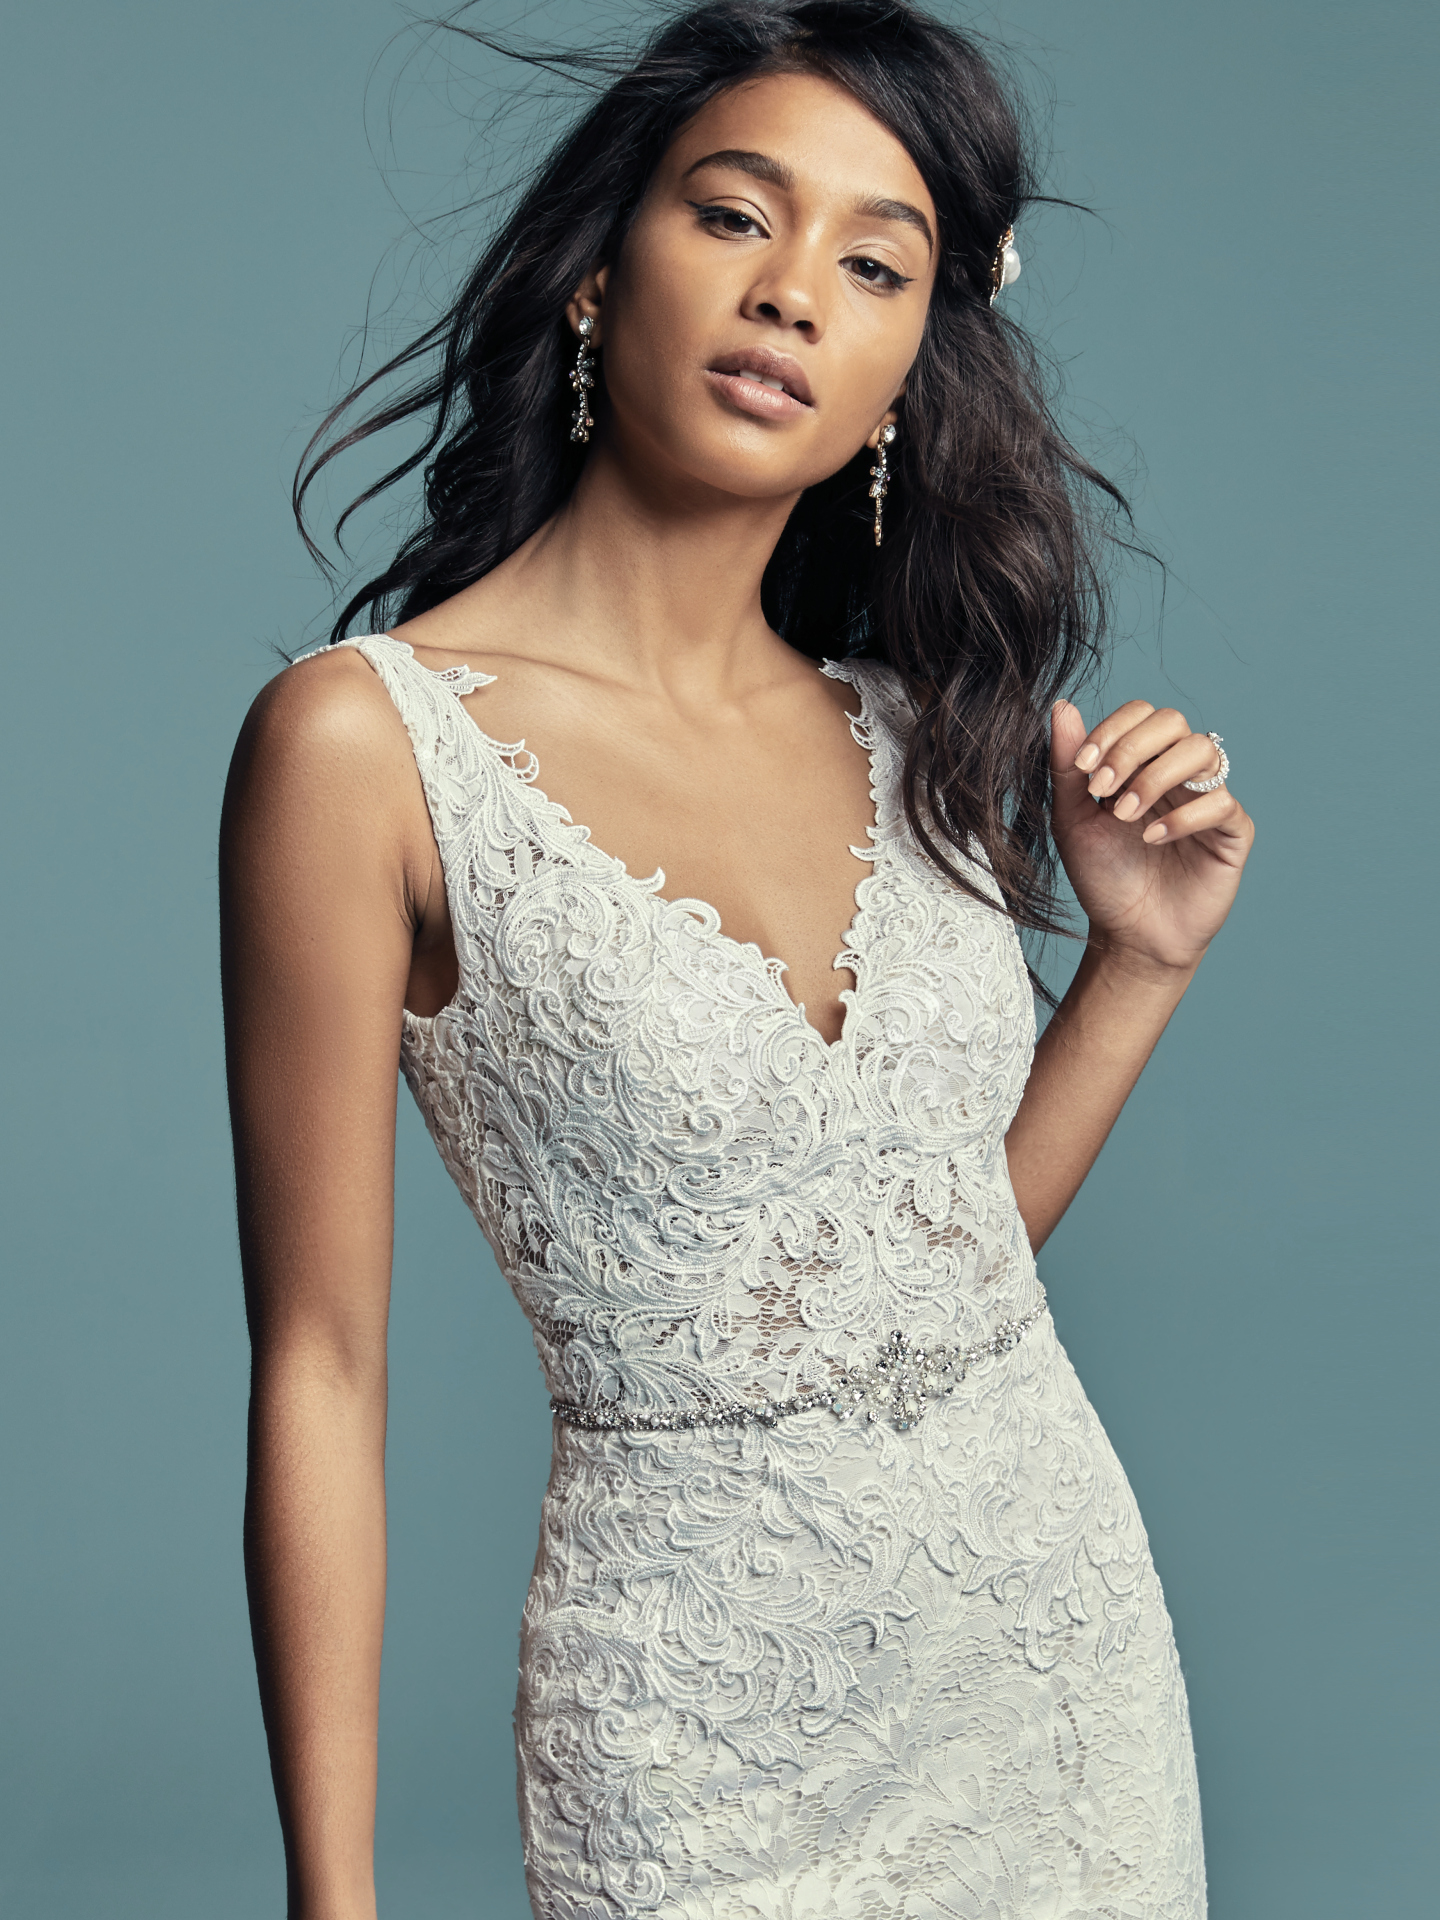 New Boho Wedding Dresses from the Lucienne Collection - Caroline by Maggie Sottero